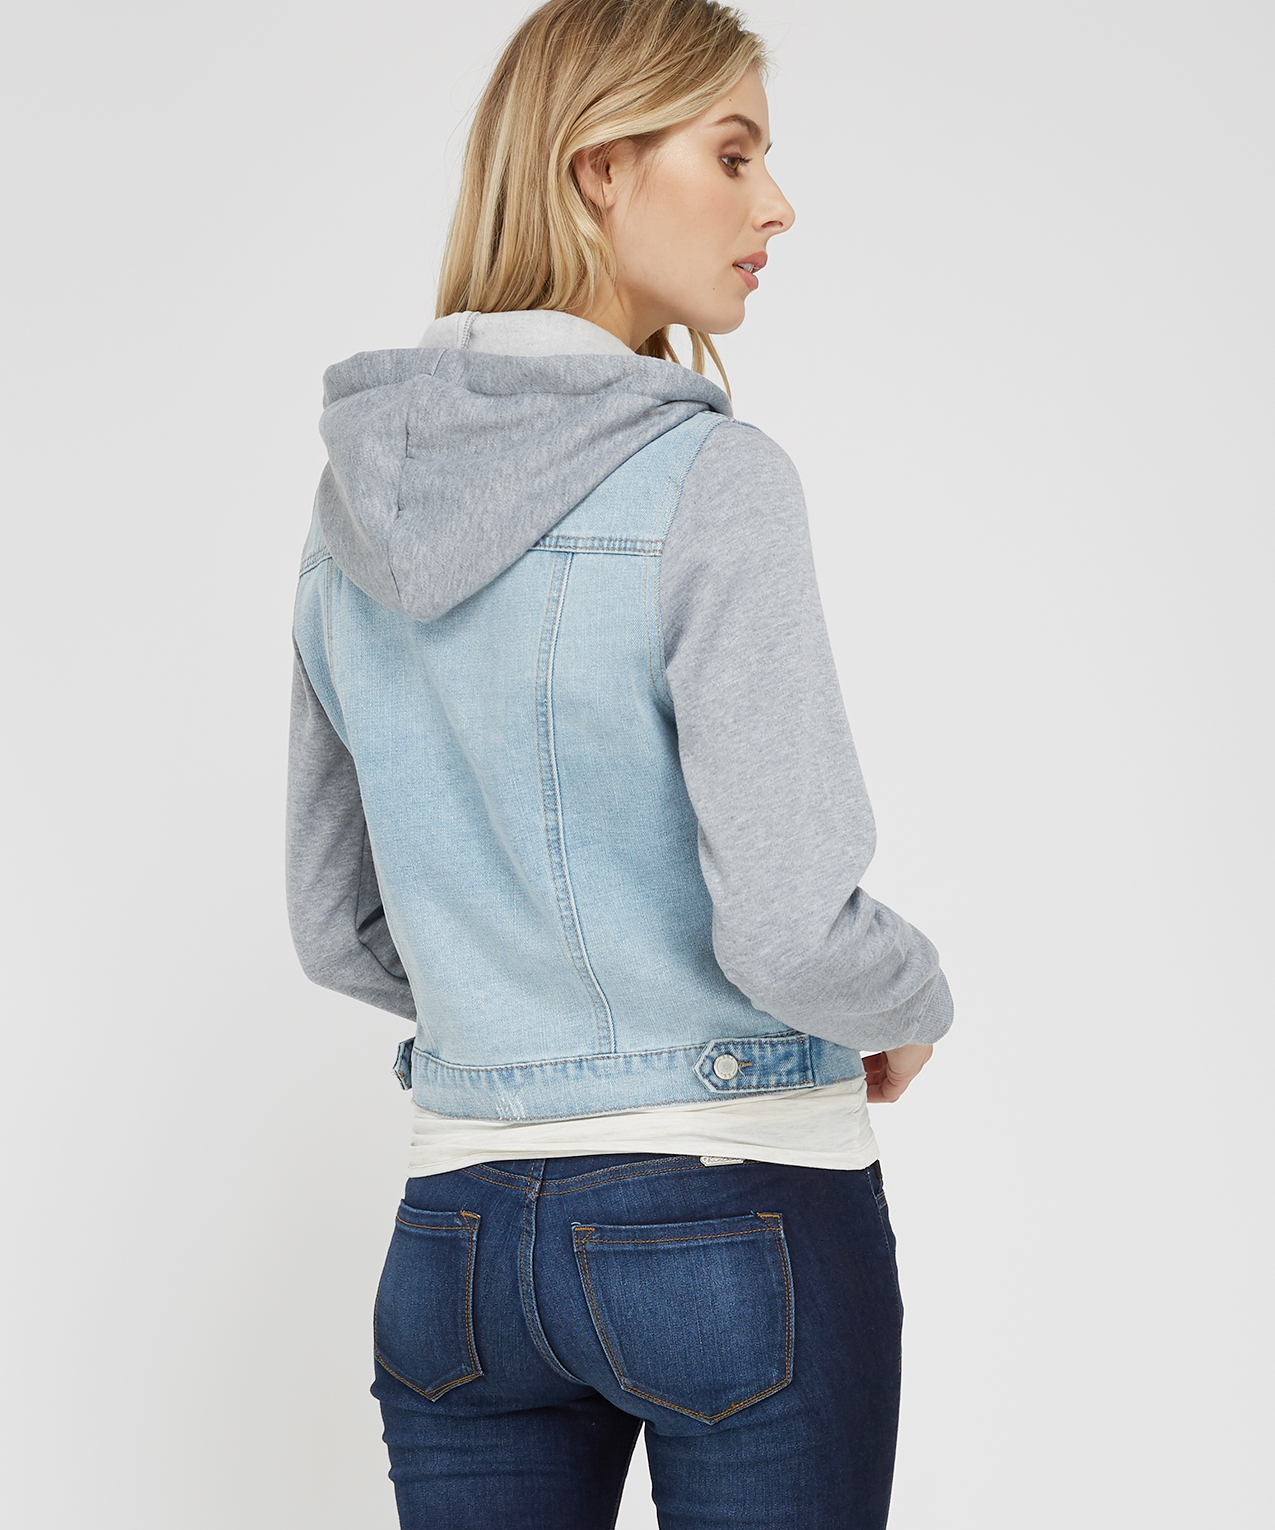 0108a4620a1d22 denim jacket with knit sleeves and hood